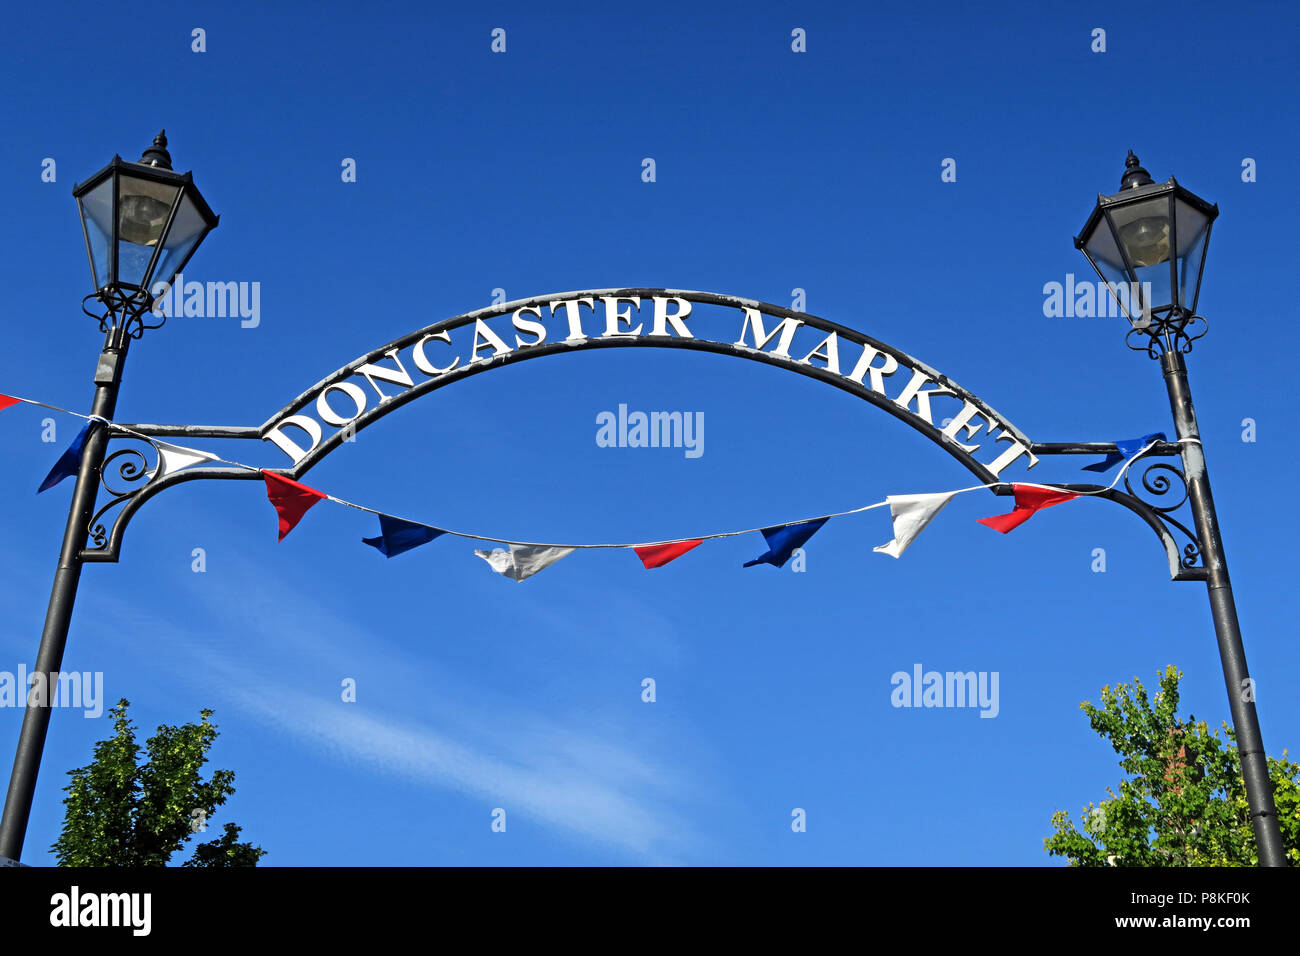 Doncaster Market Sign, Marketplace, South Yorkshire, England, UK - Stock Image